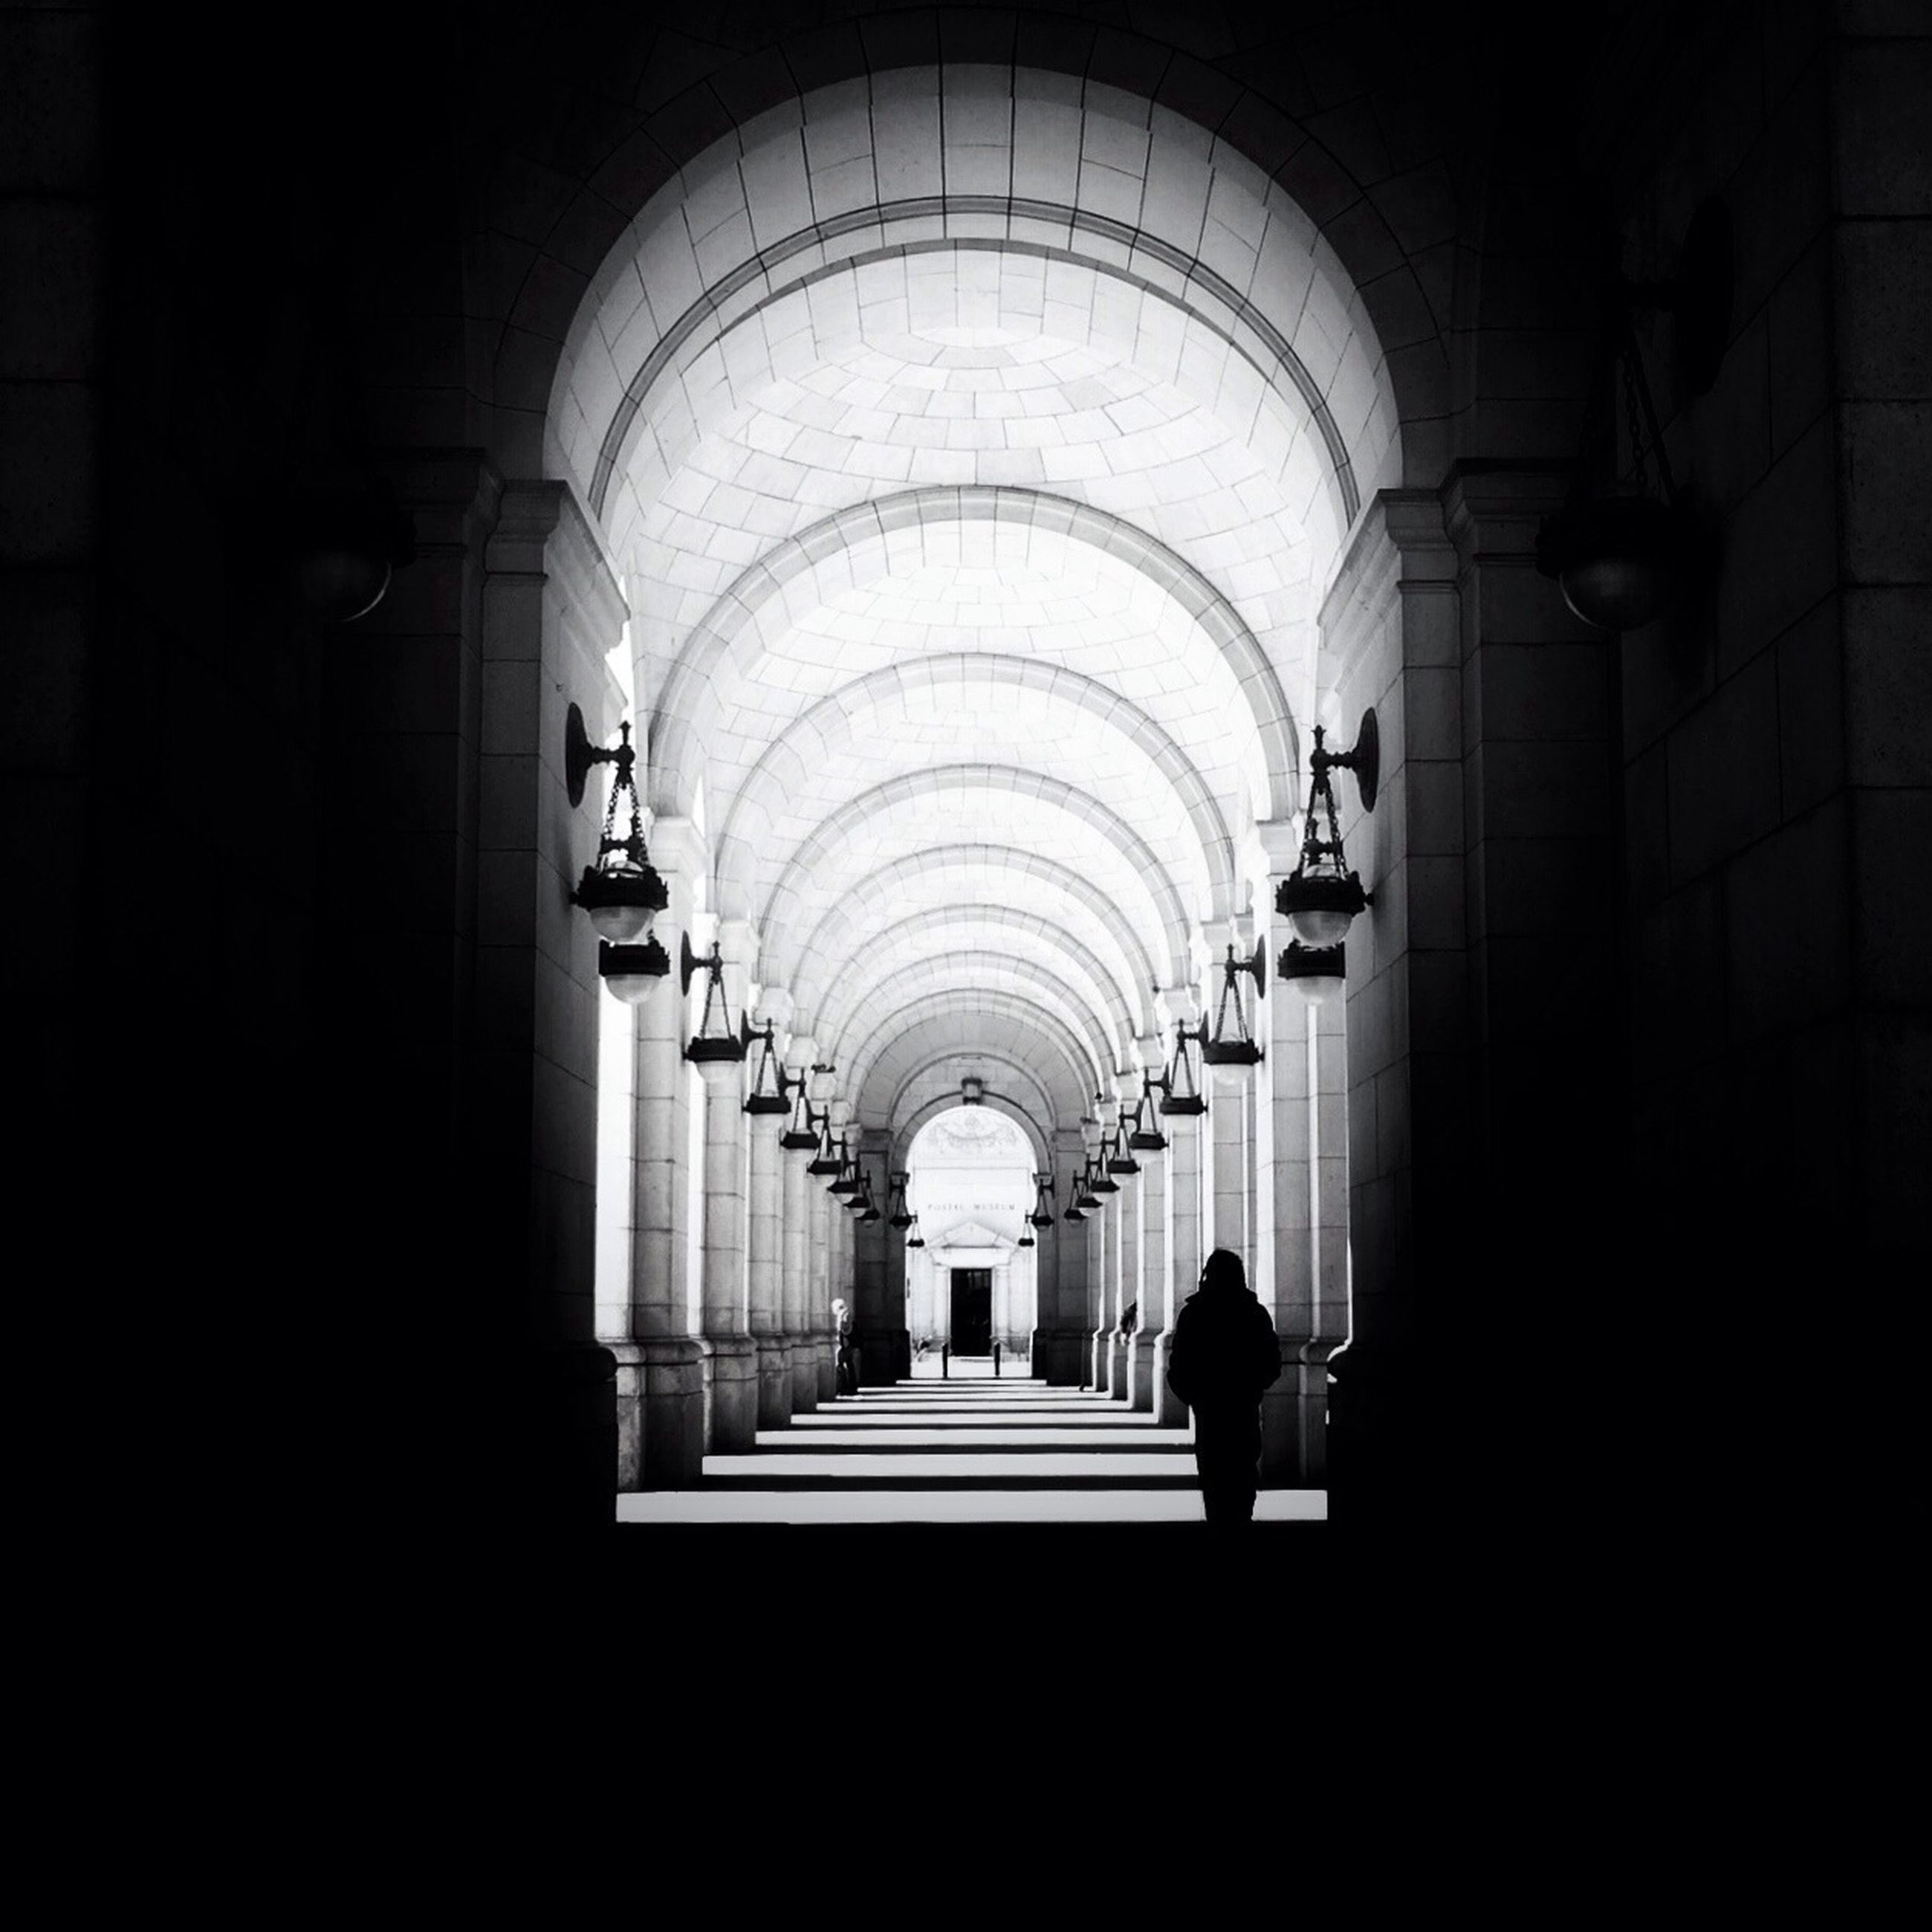 indoors, arch, architecture, corridor, ceiling, built structure, the way forward, diminishing perspective, men, walking, tunnel, rear view, full length, illuminated, architectural column, archway, lighting equipment, silhouette, in a row